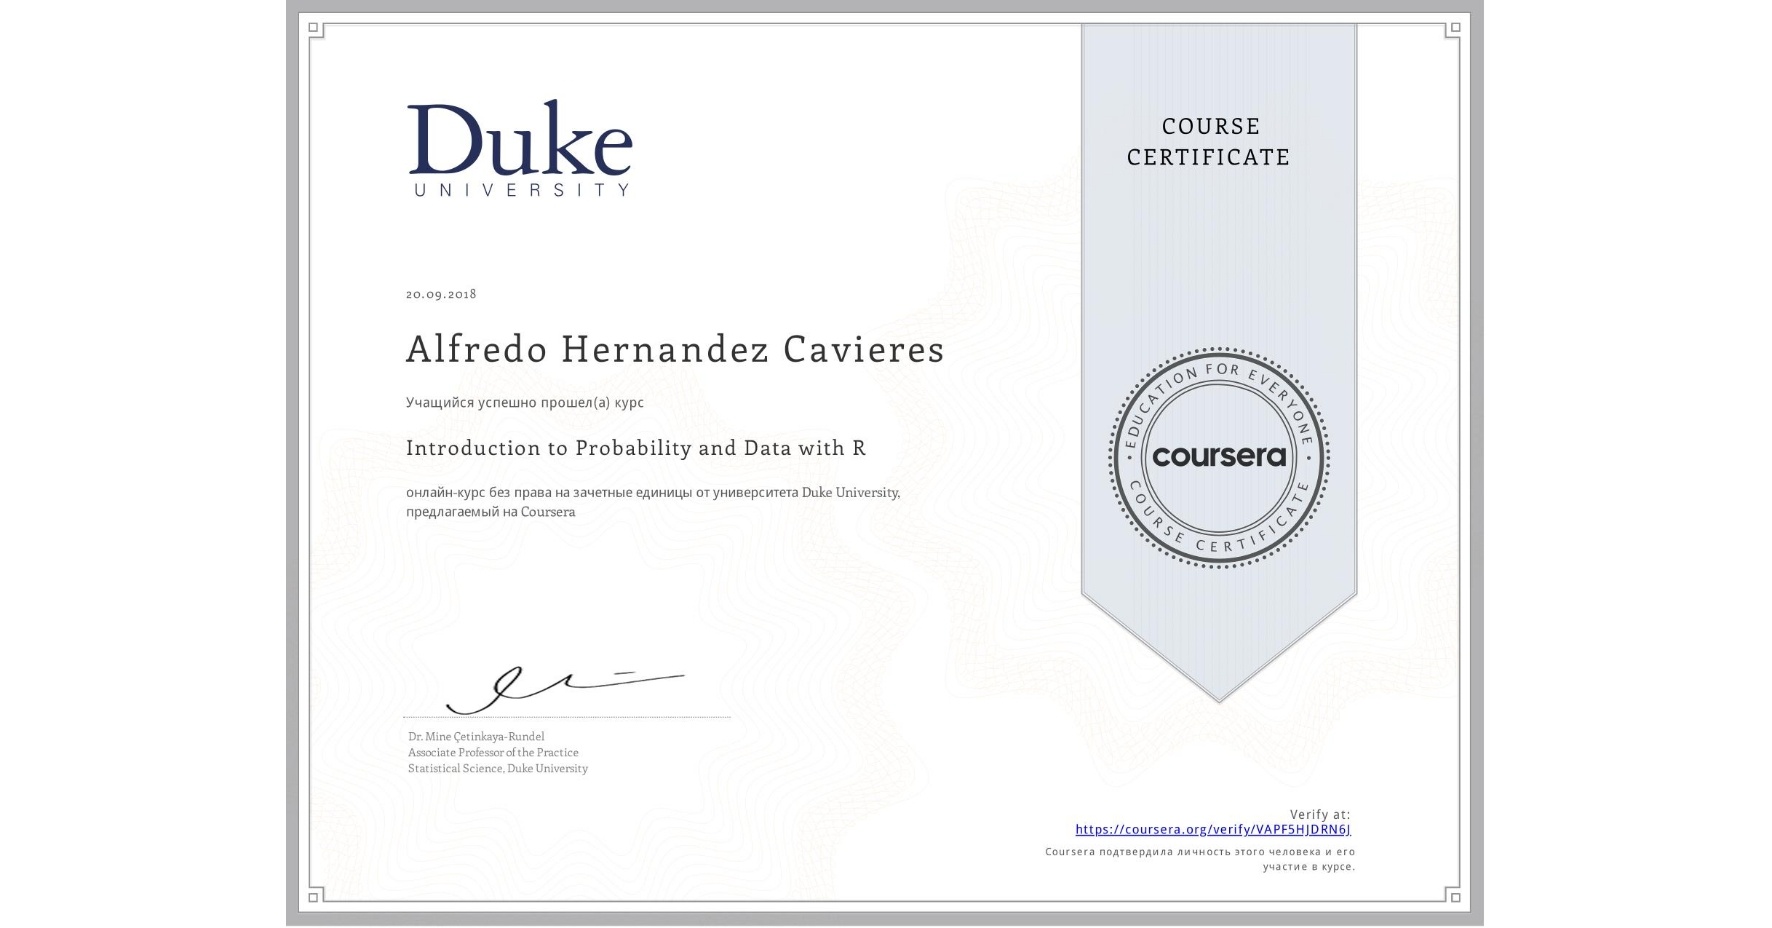 View certificate for Alfredo Hernandez Cavieres, Introduction to Probability and Data with R, an online non-credit course authorized by Duke University and offered through Coursera